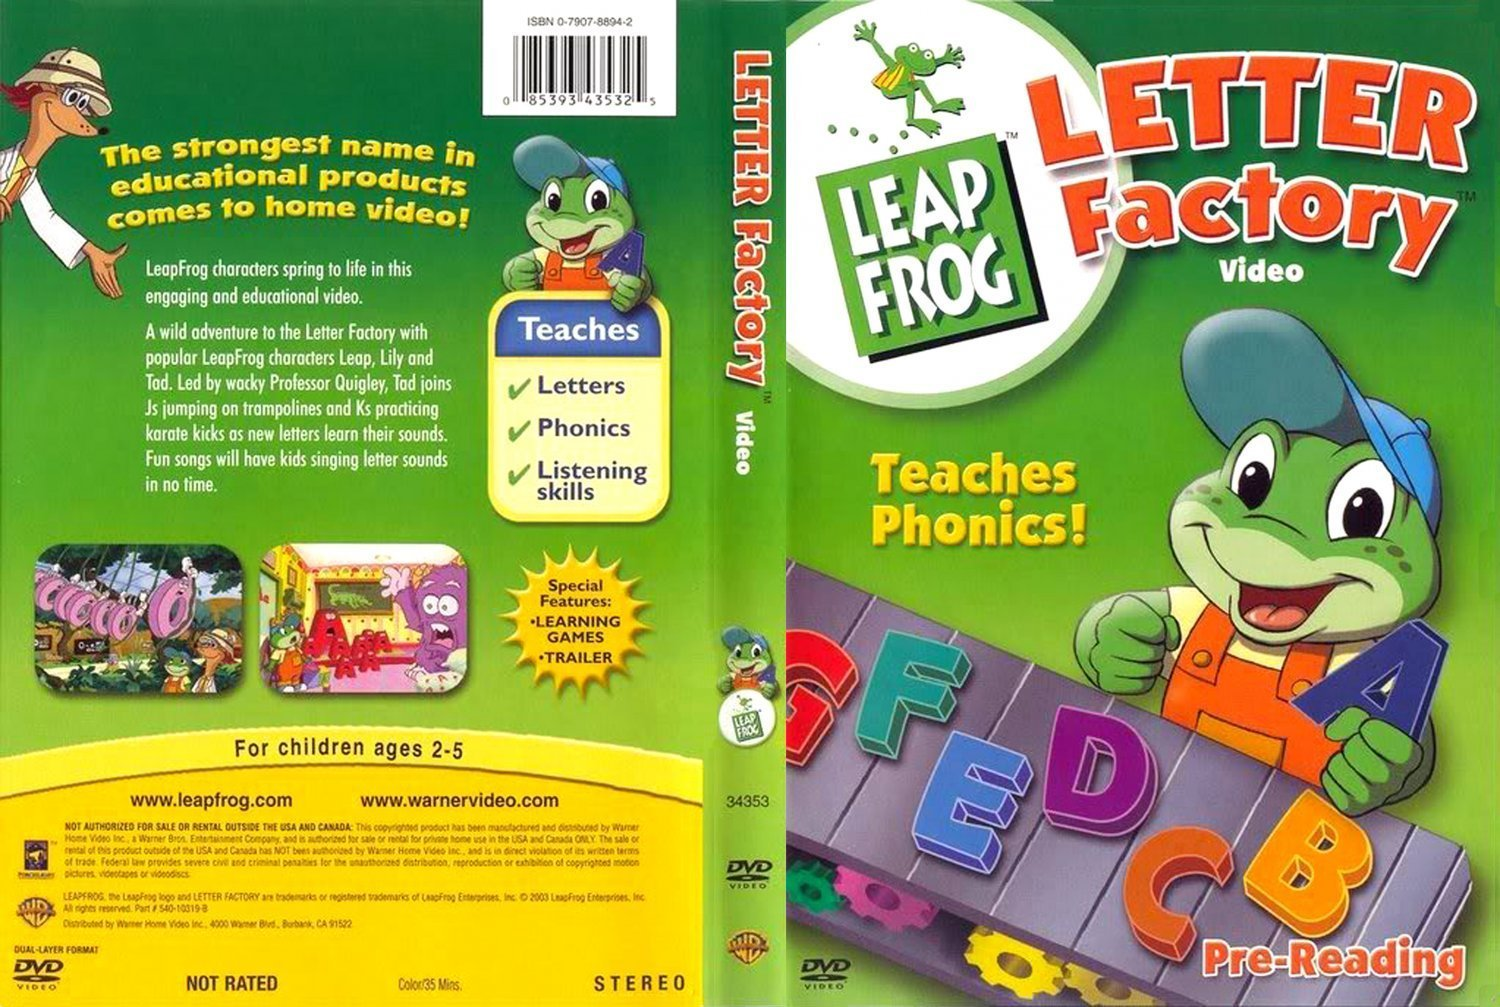 dvd cover leapfrog letter factory